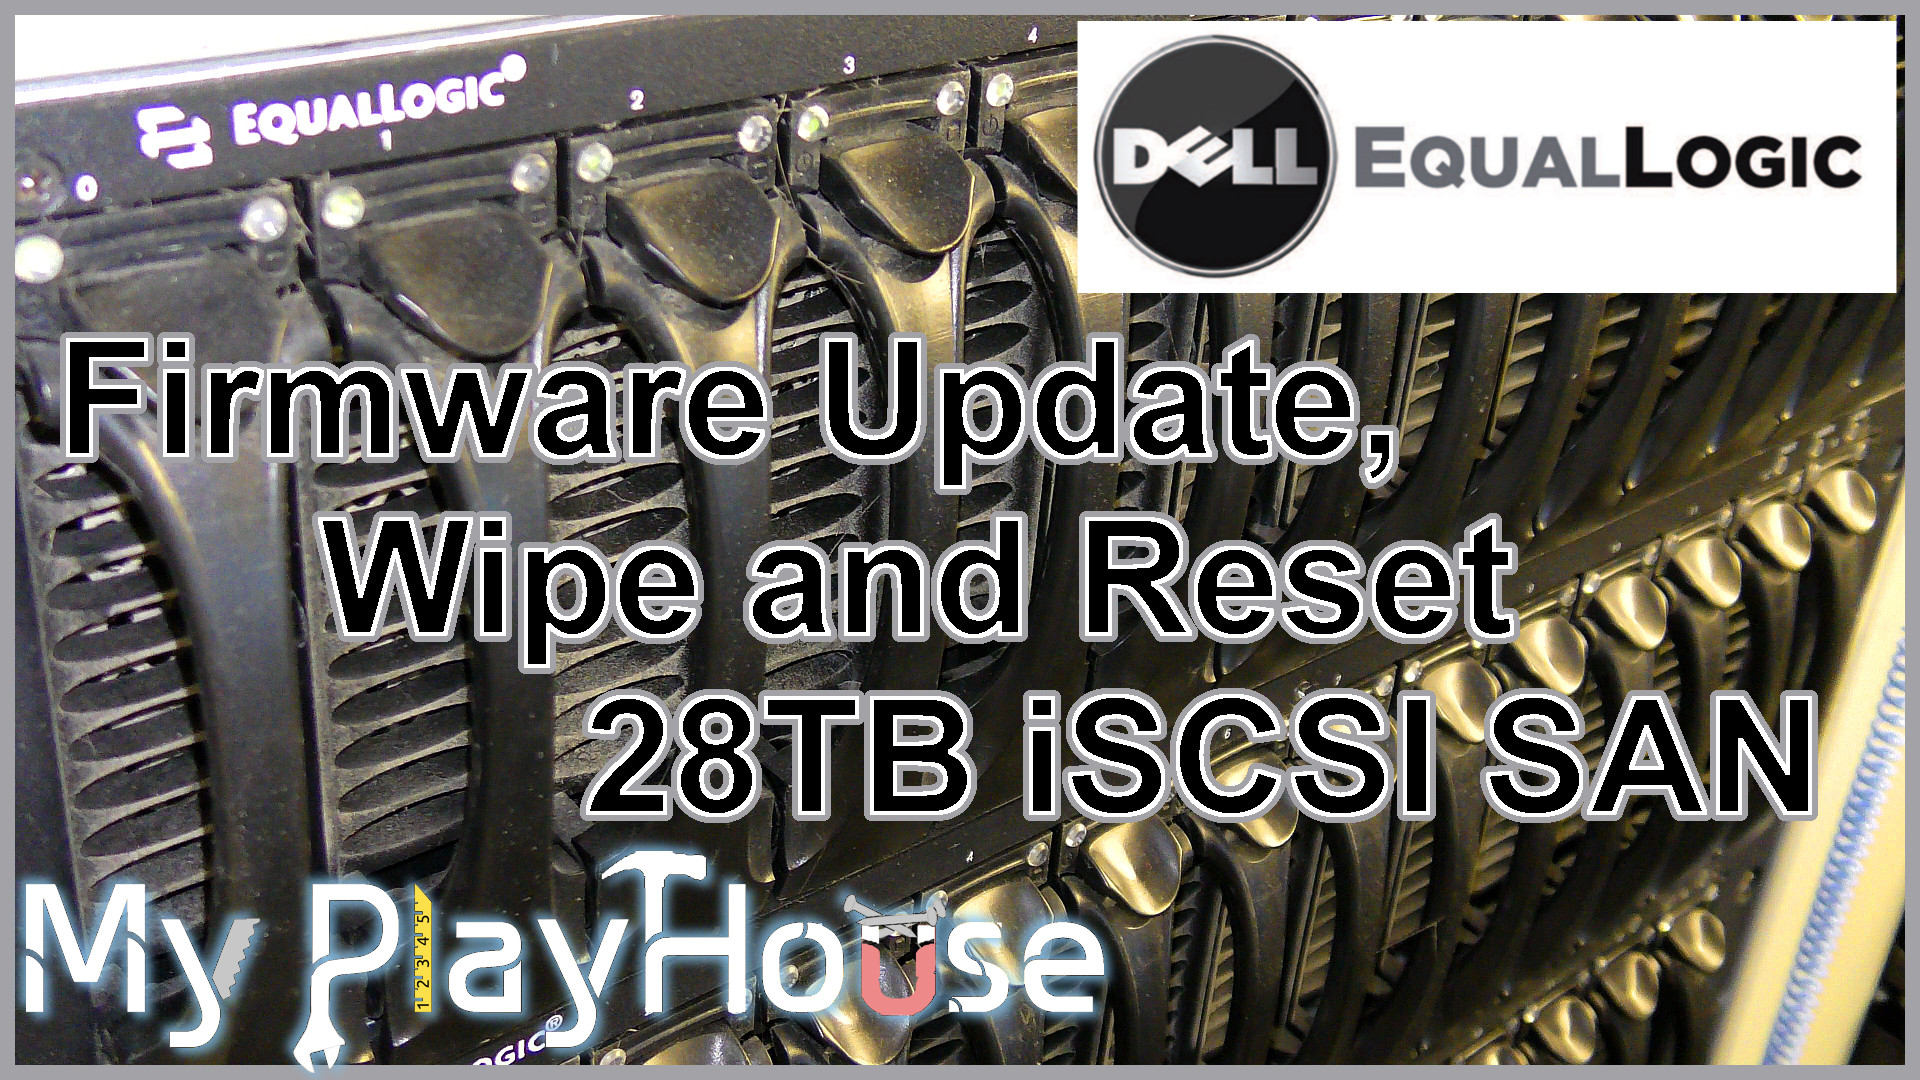 Dell EqualLogic - How to Firmware Update, Wipe and Reset - 737